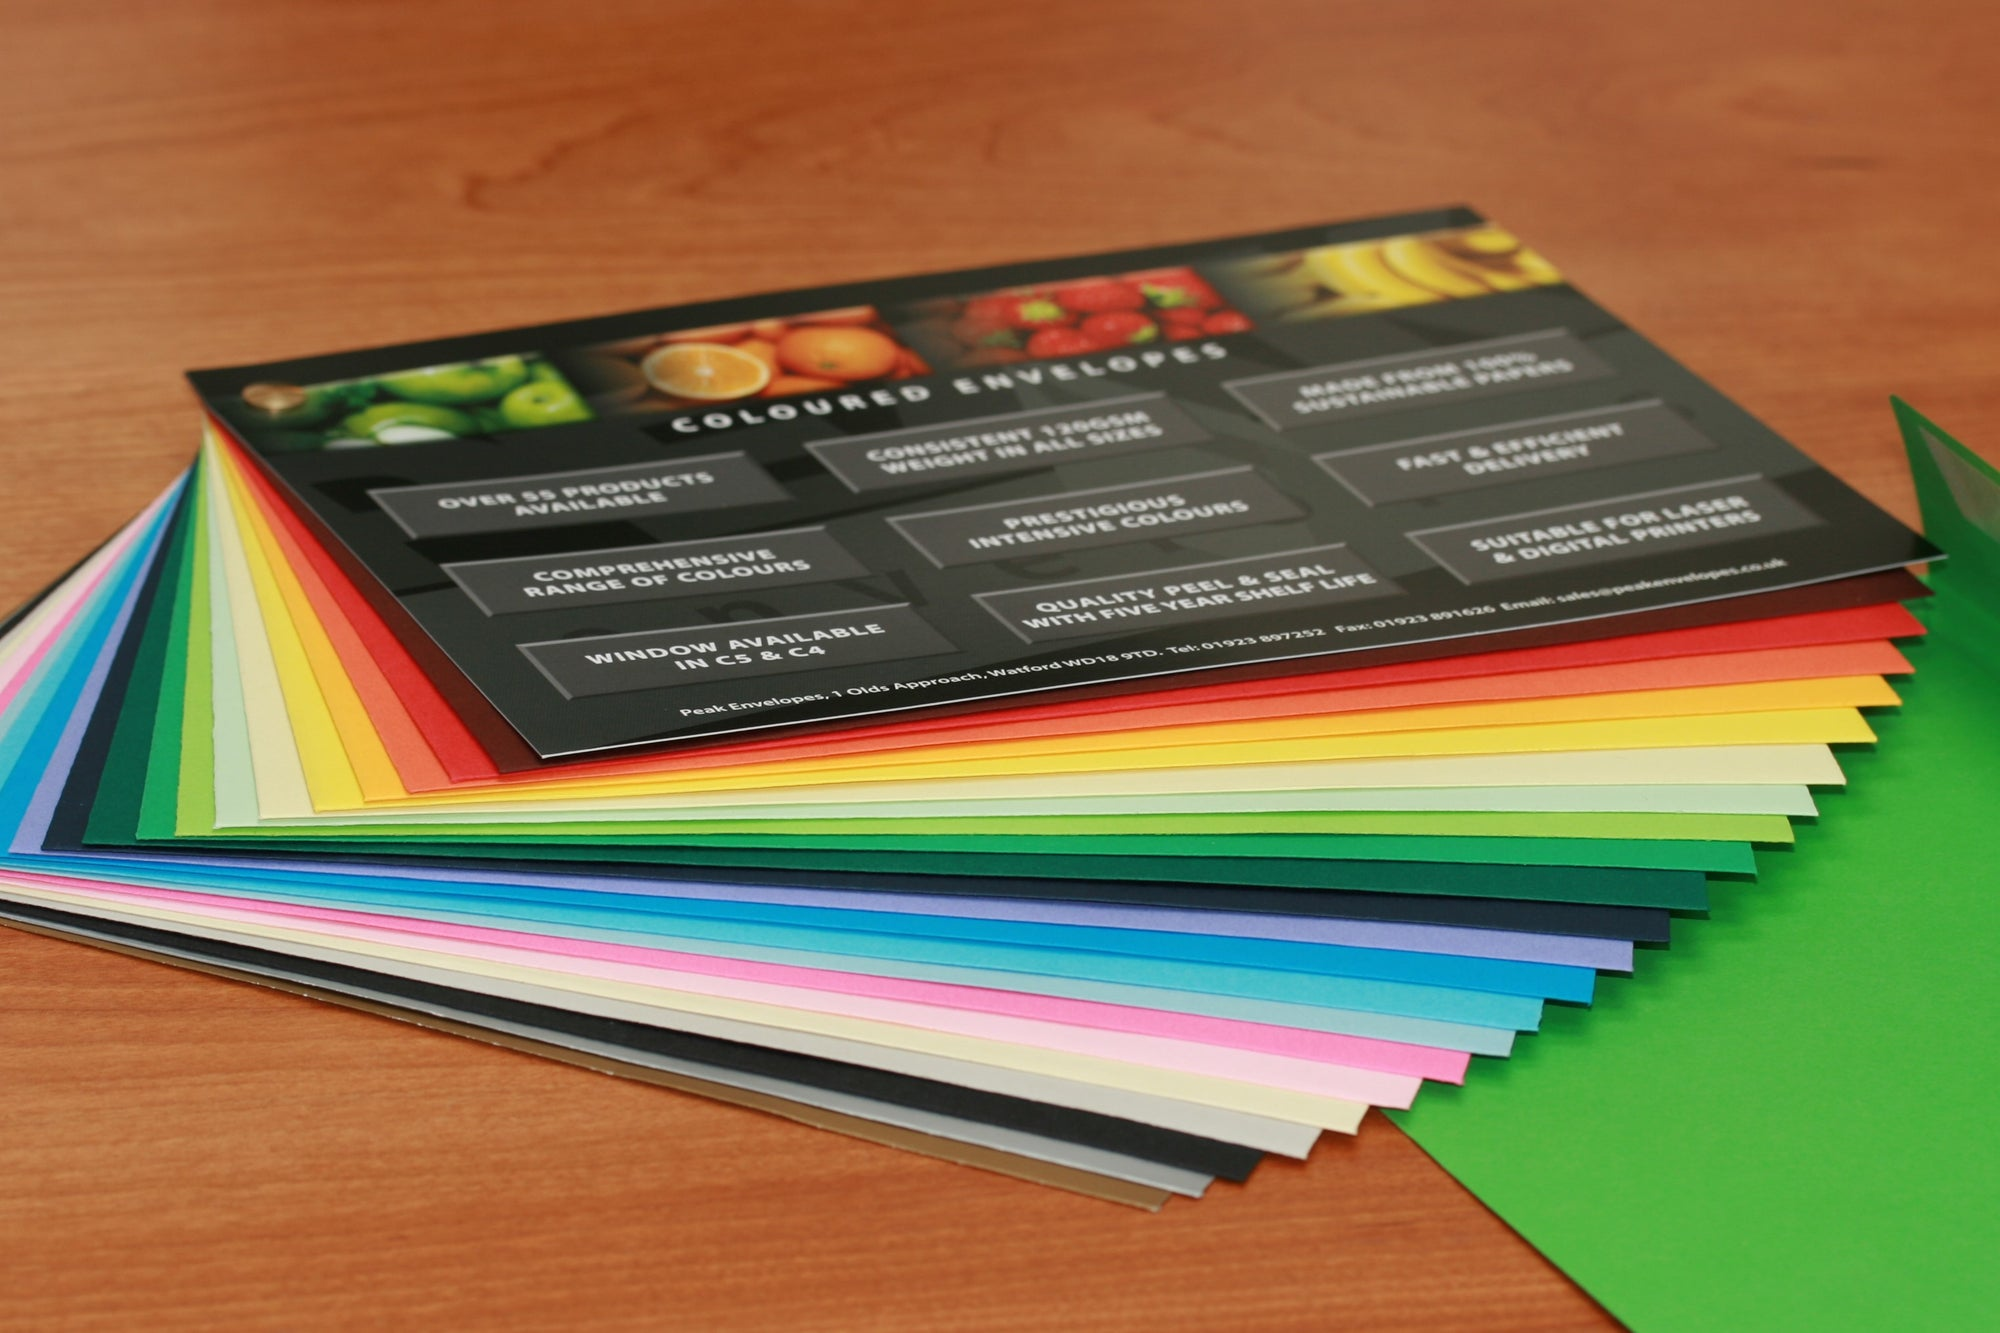 Cascade - Complete range of coloured envelopes